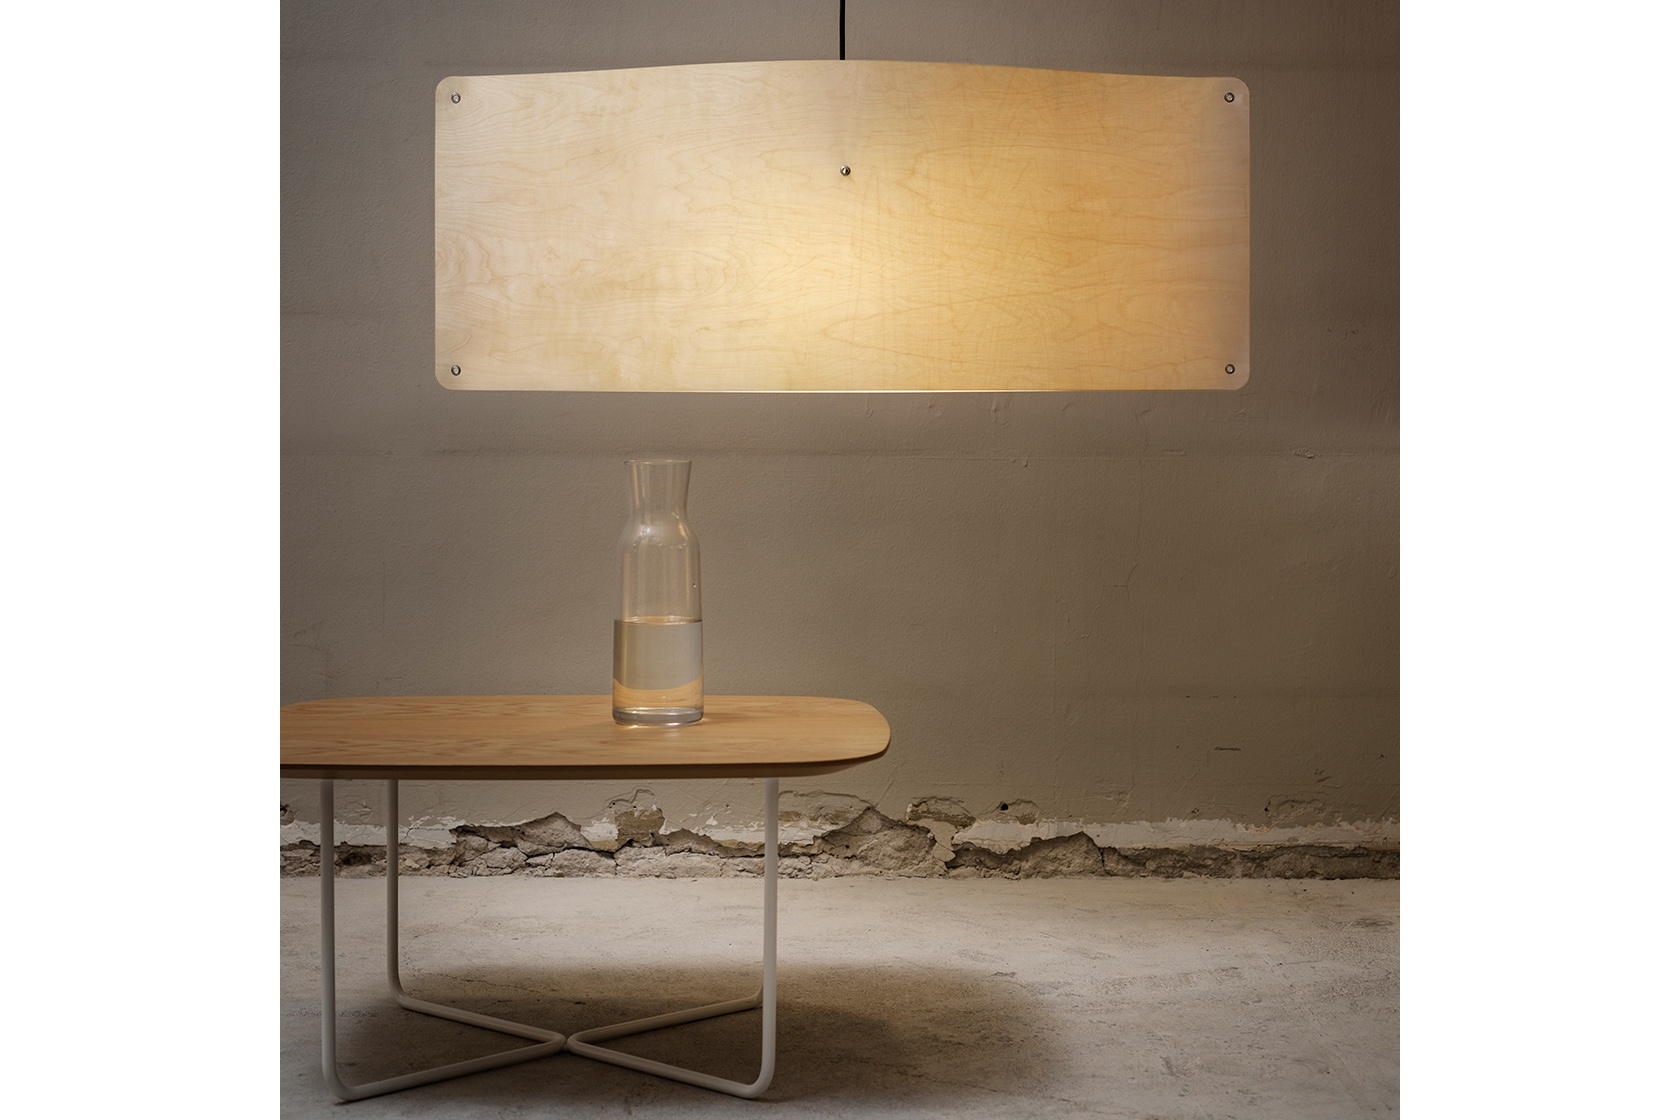 Finomlights®_Wide_pendant_large_WPL_interior3_Photo Pekka Kiirala_Vesmanen